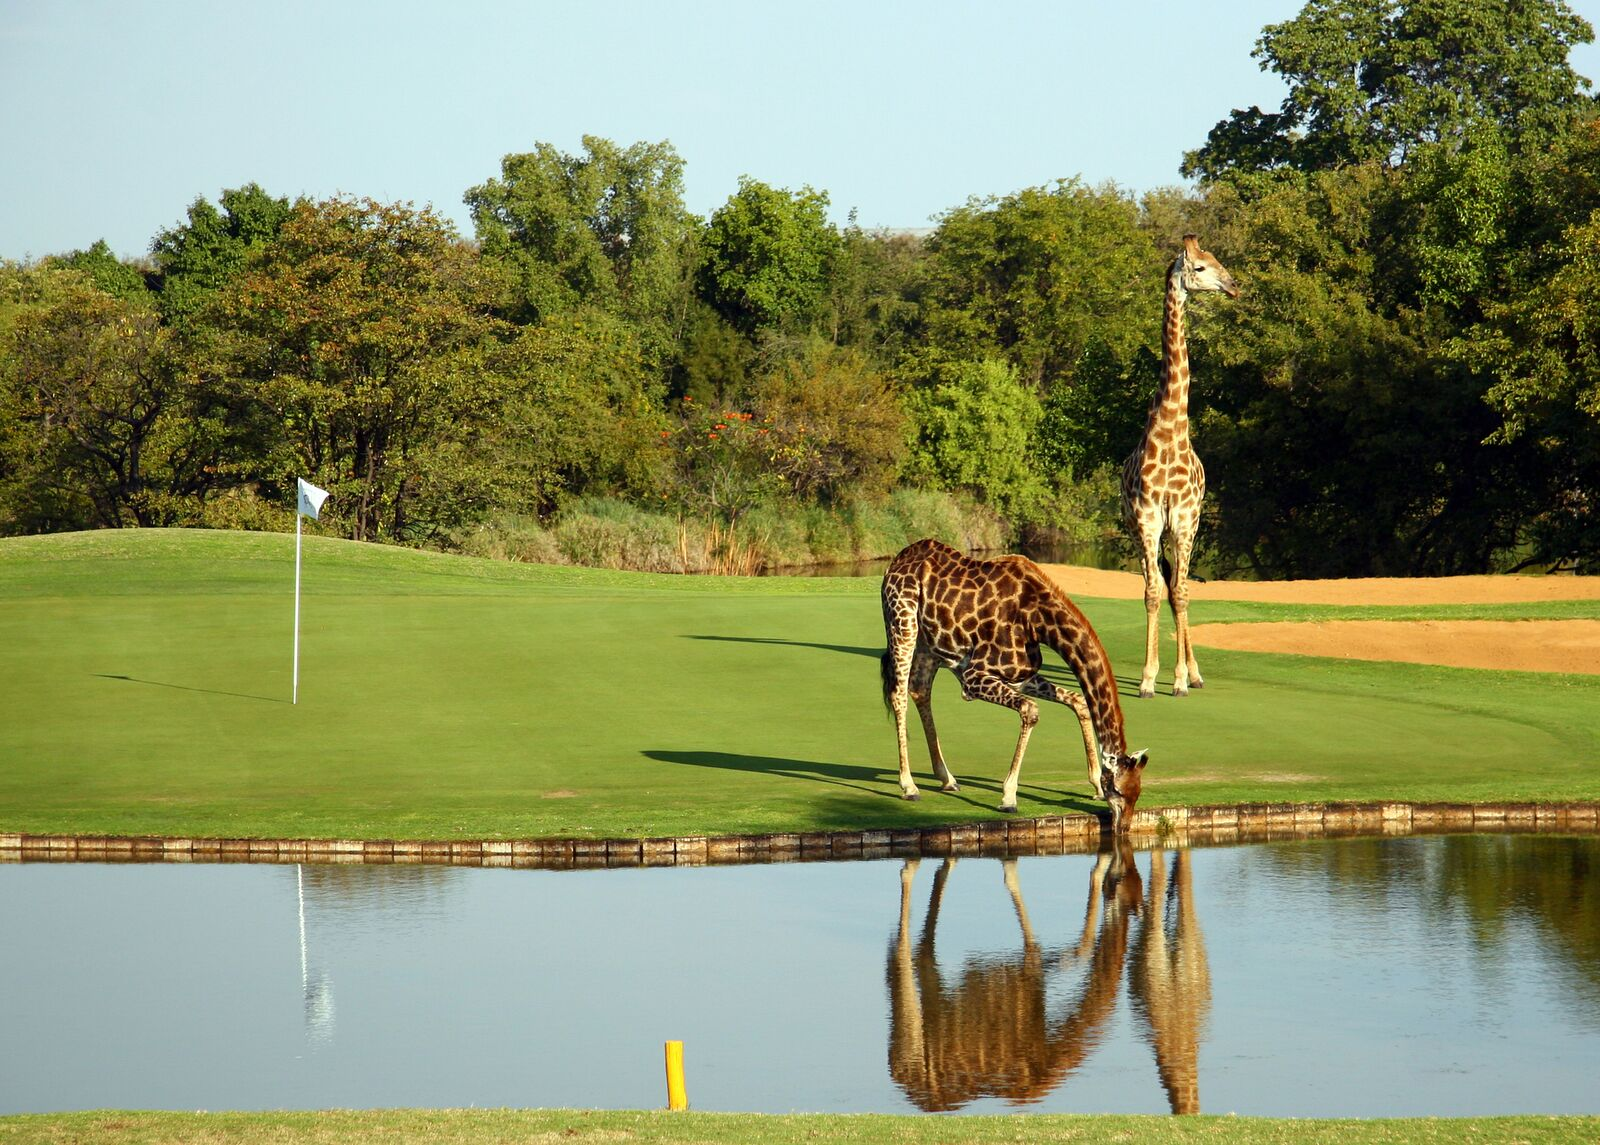 golf in the wild con giraffe